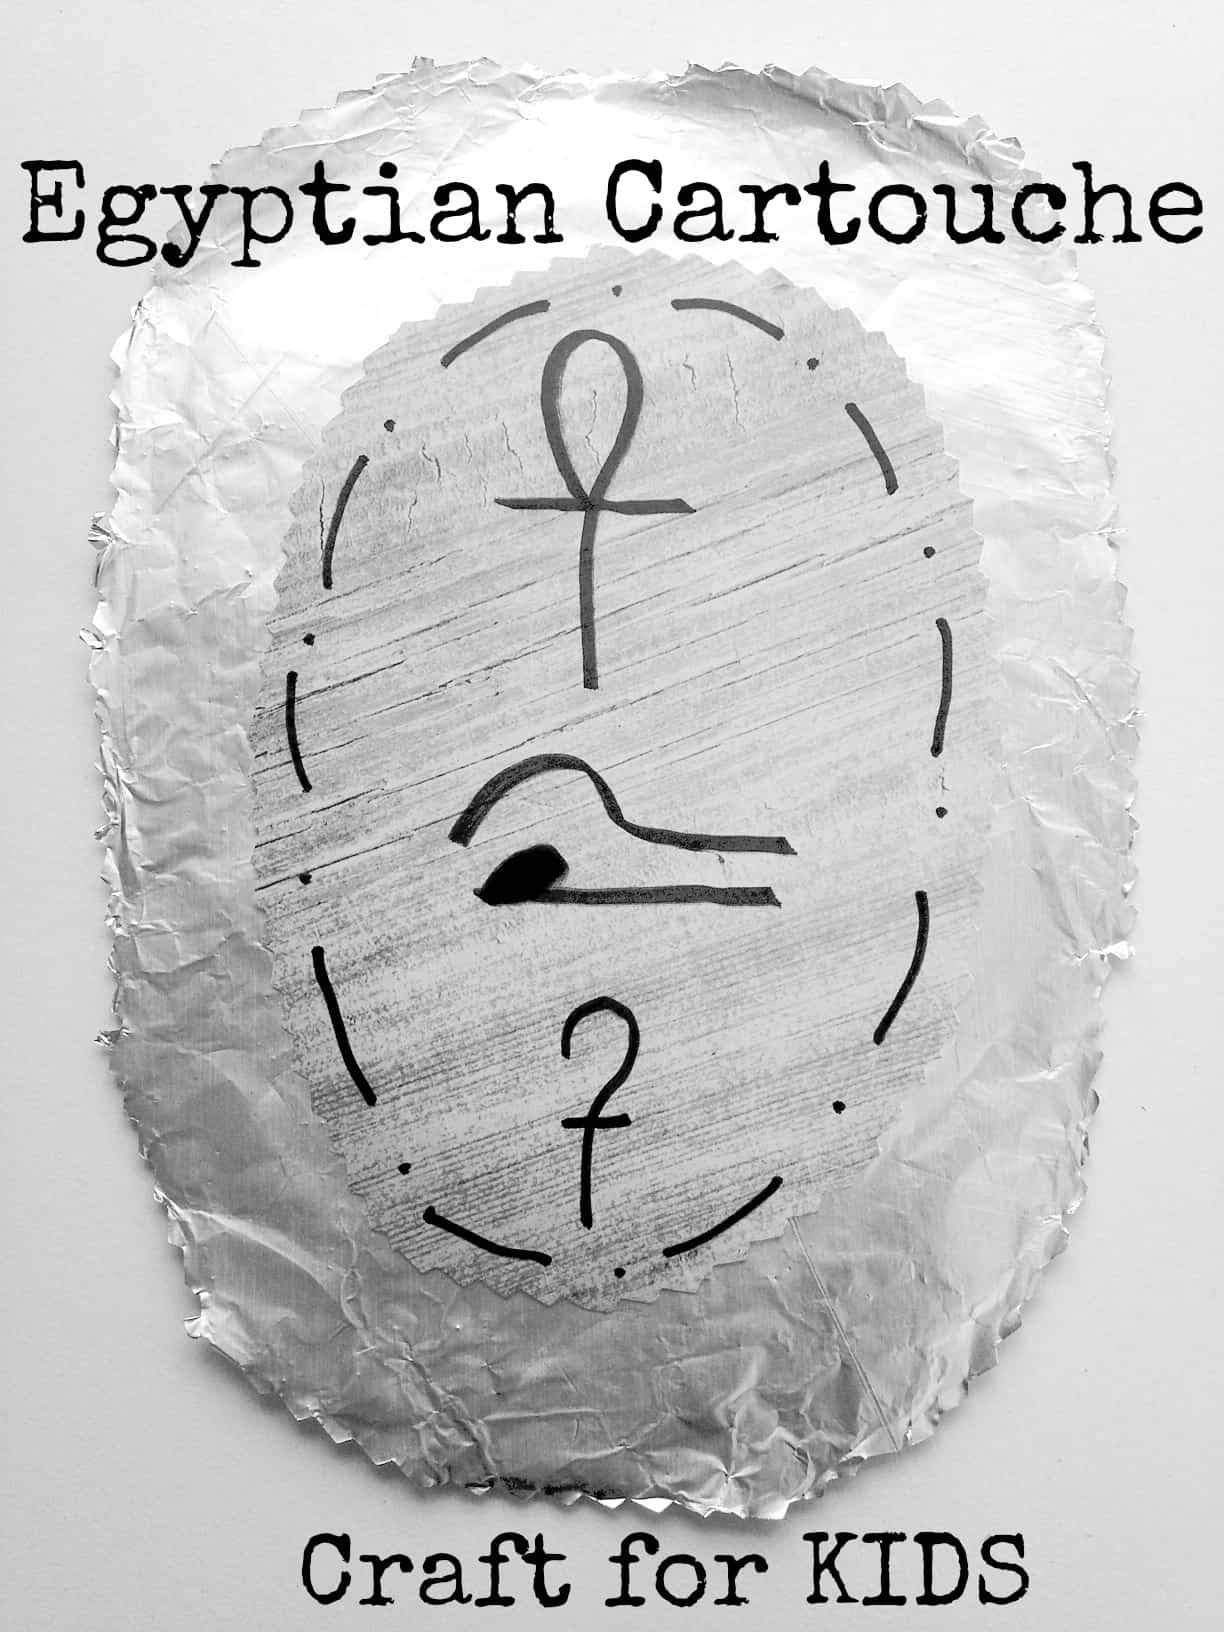 Make Your Own Egyptian Cartouche Craft for Kids